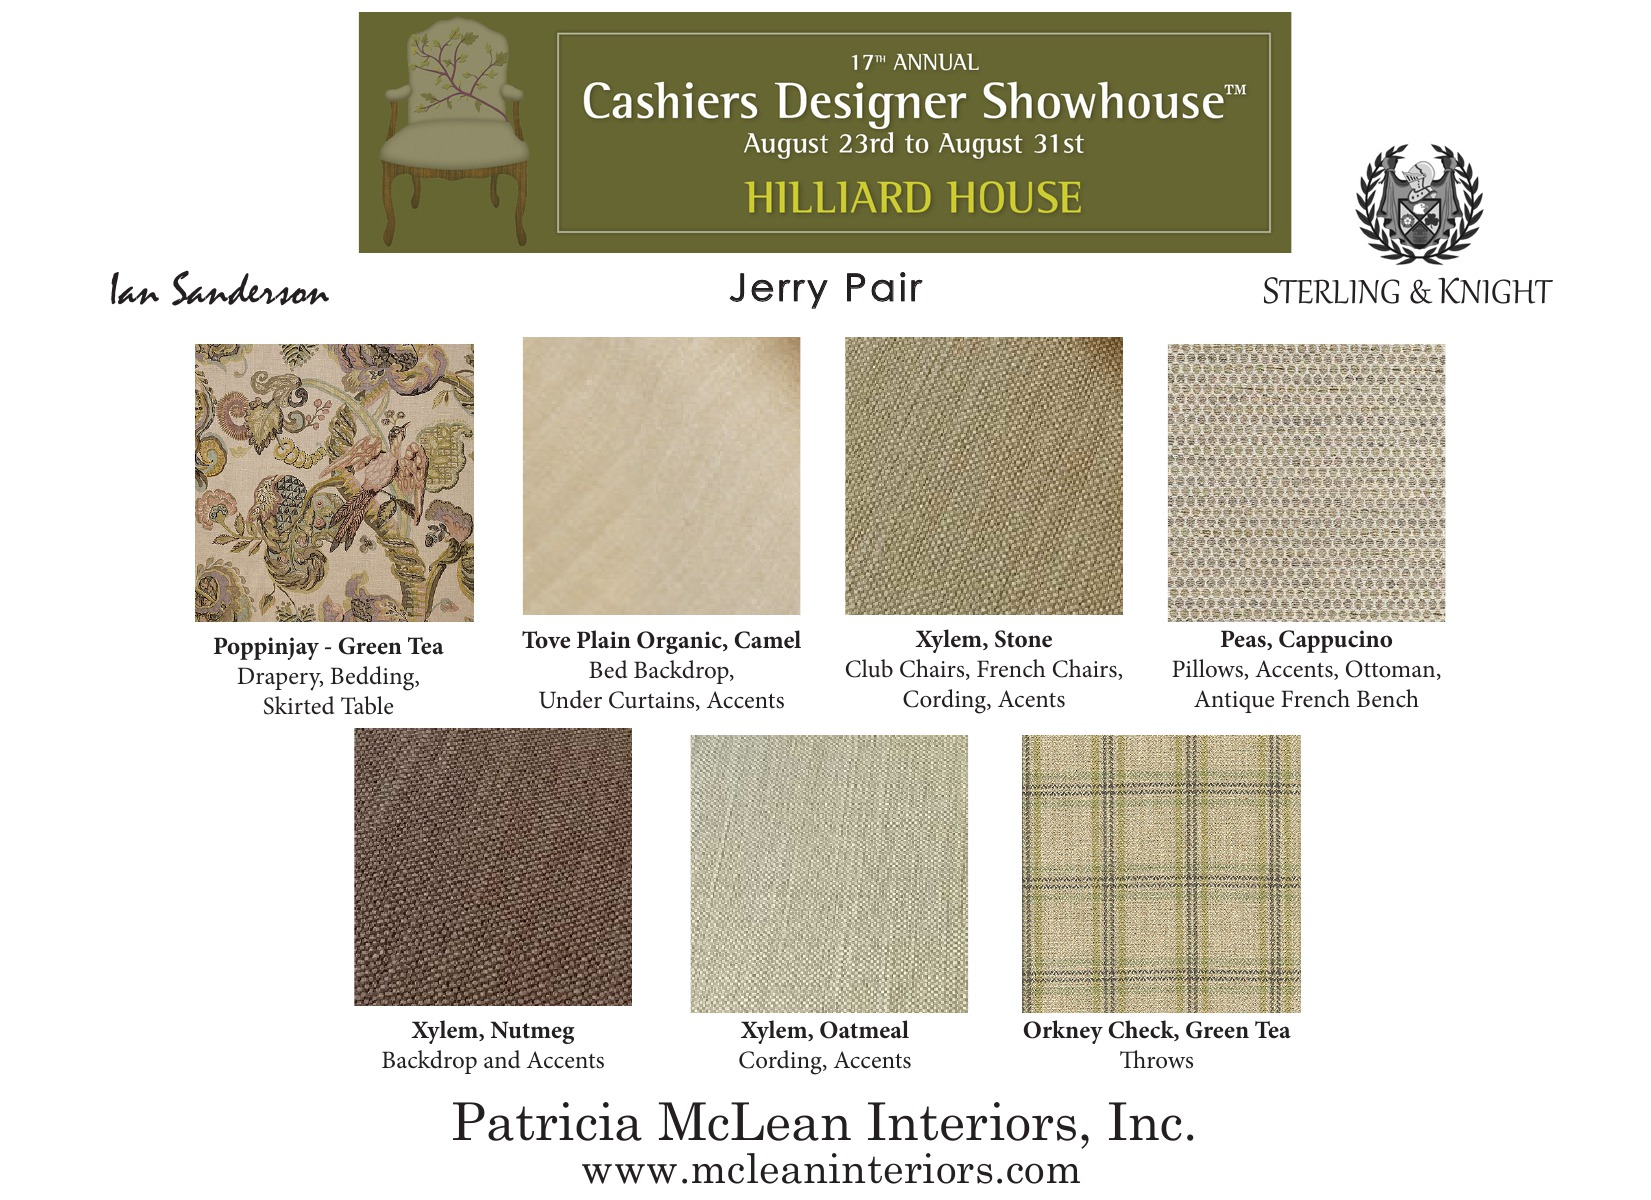 Scheme for the upcoming 2014 Cashiers Designer Showhouse. Click to enlarge.